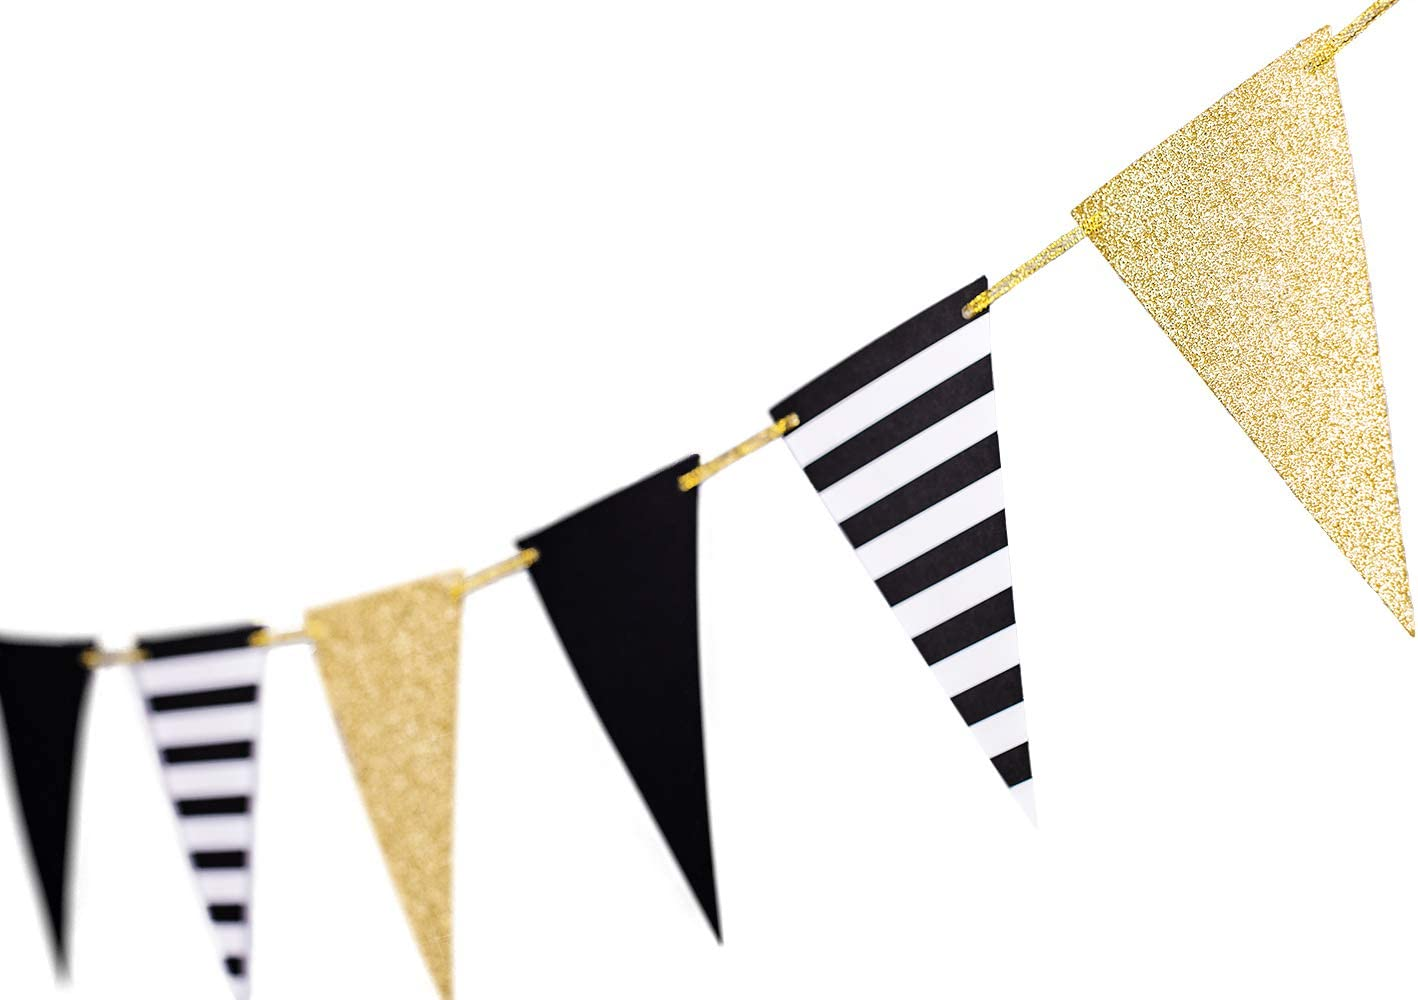 10 Feet Gold Black Triangle Banner Decoration Golden Christmas New Years Eve Supplies Bunting Signs Decoration for Birthday Gatsby Party Nursery Classroom Decoration Flags 15pcs (Golden Black Striped)